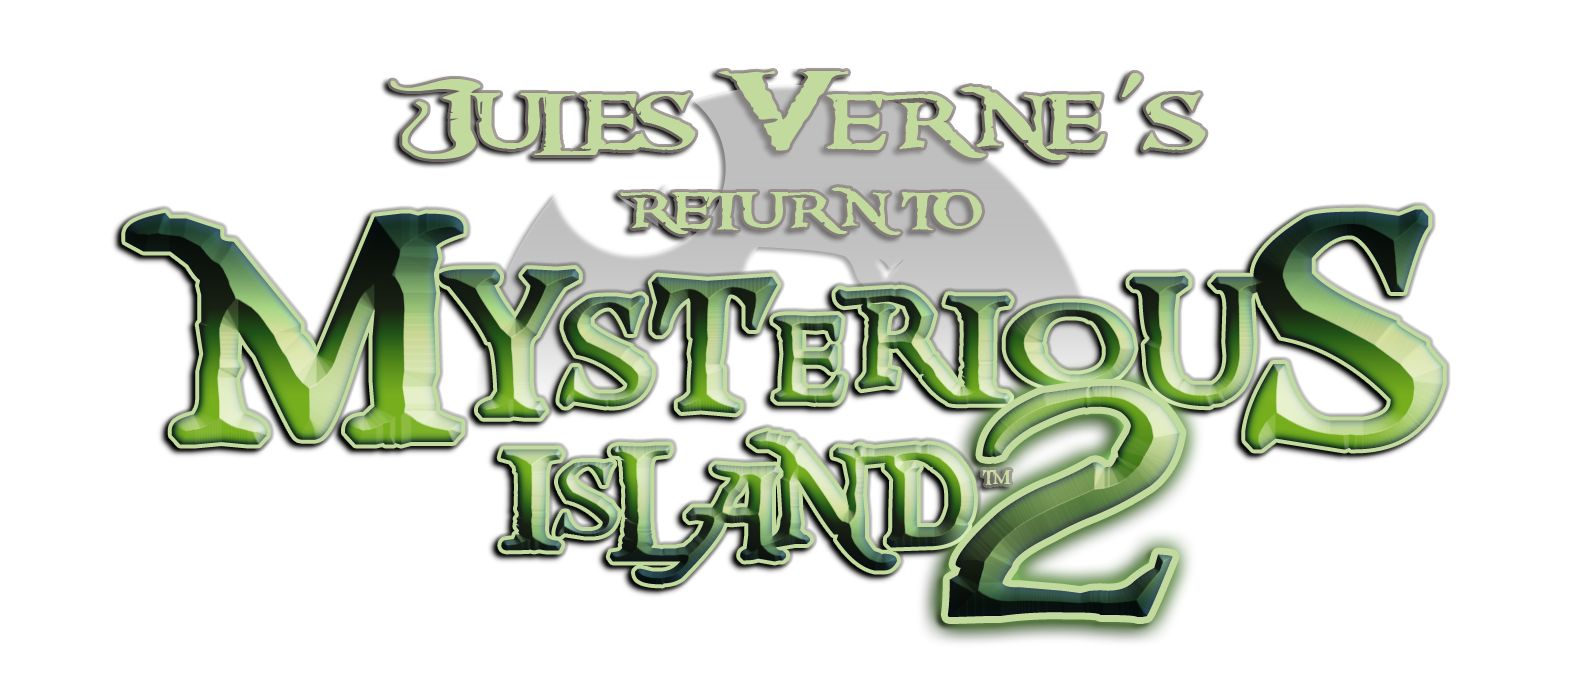 Jule-Vernes-Return-to-Mysteriou-Island-2-Logo-01